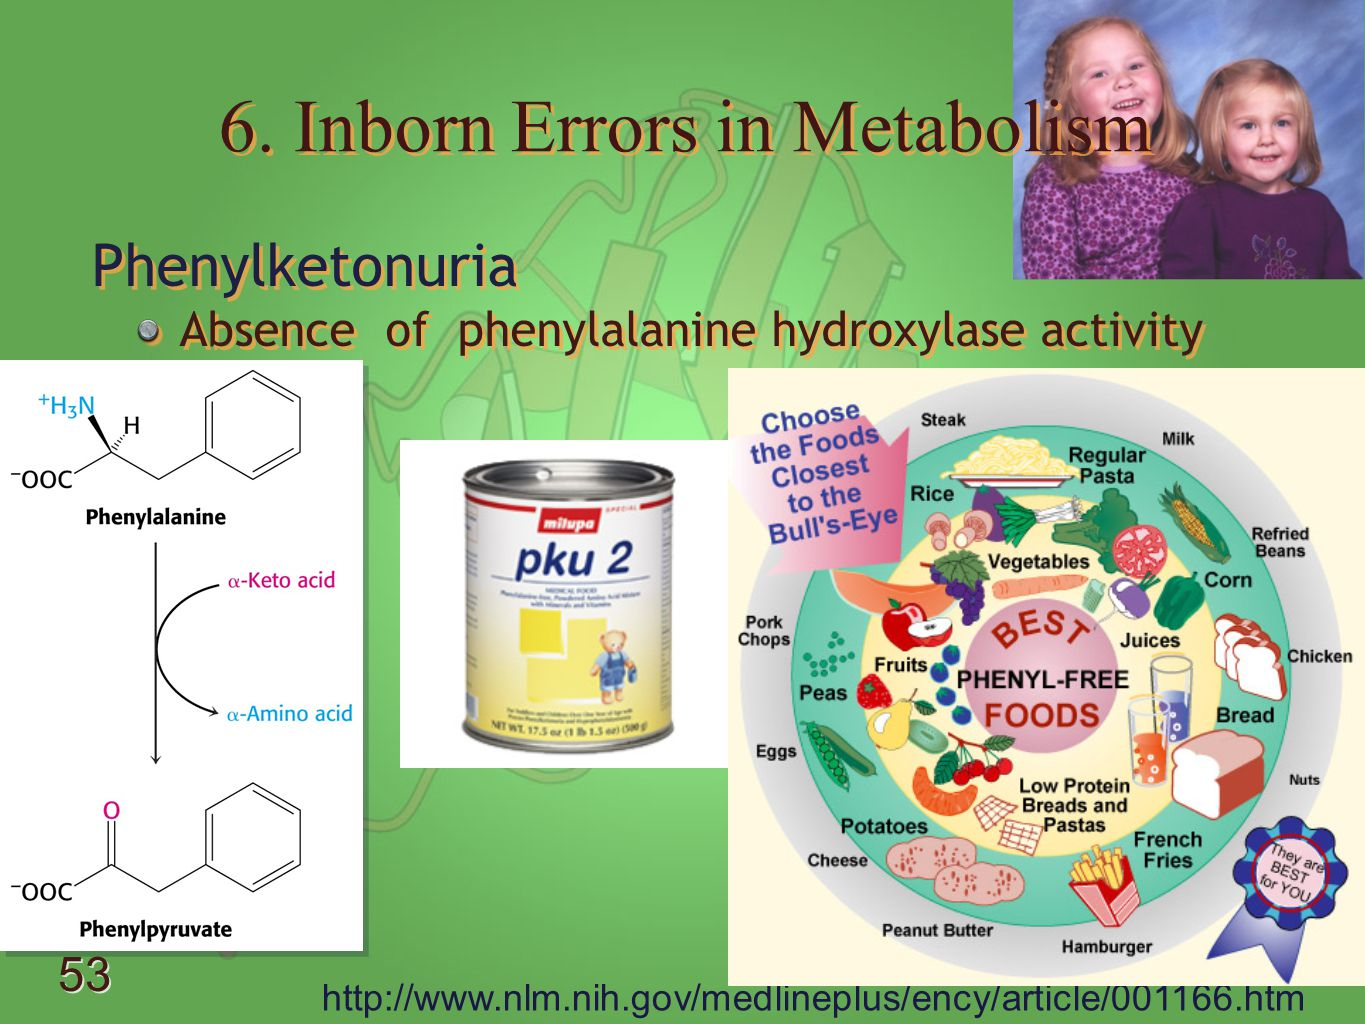 6. Inborn Errors in Metabolism